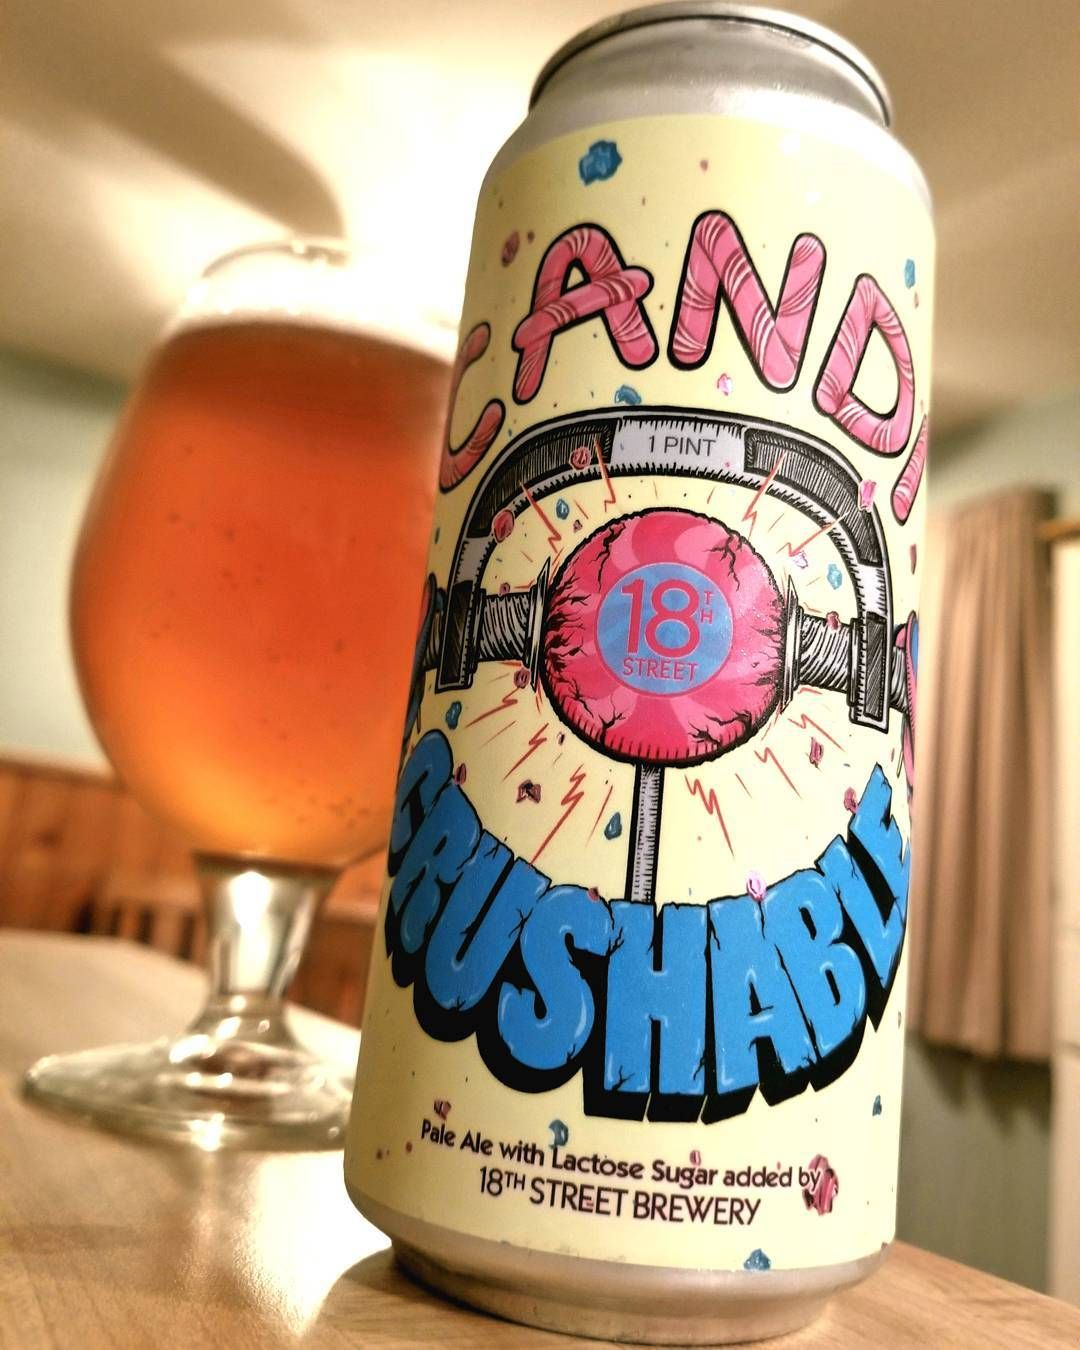 The #craftbeer I chose for Saturday night is ...